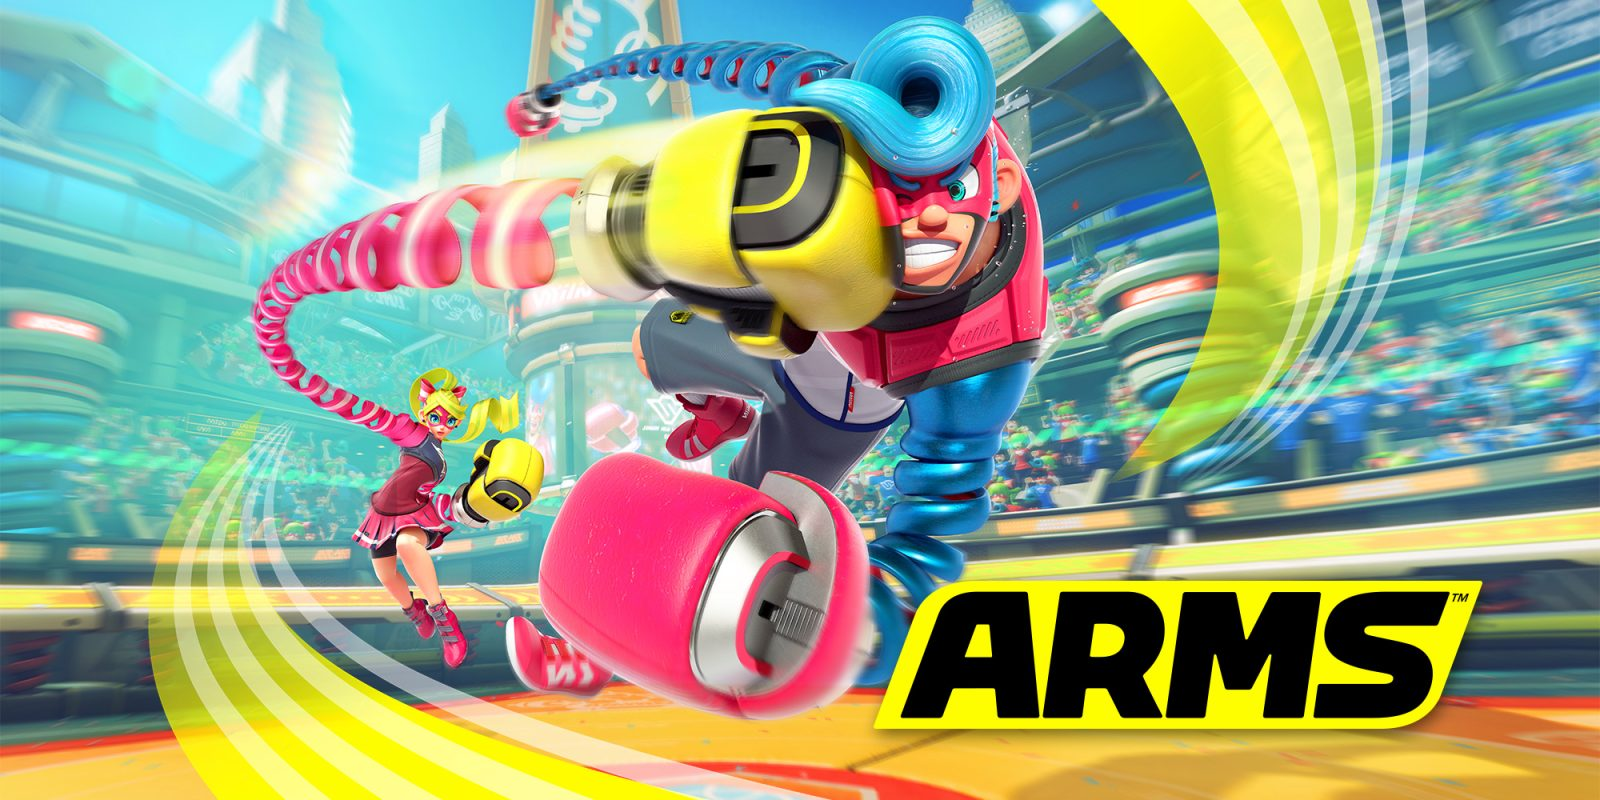 Who could the ARMS character coming to Super Smash Bros. Ultimate be?